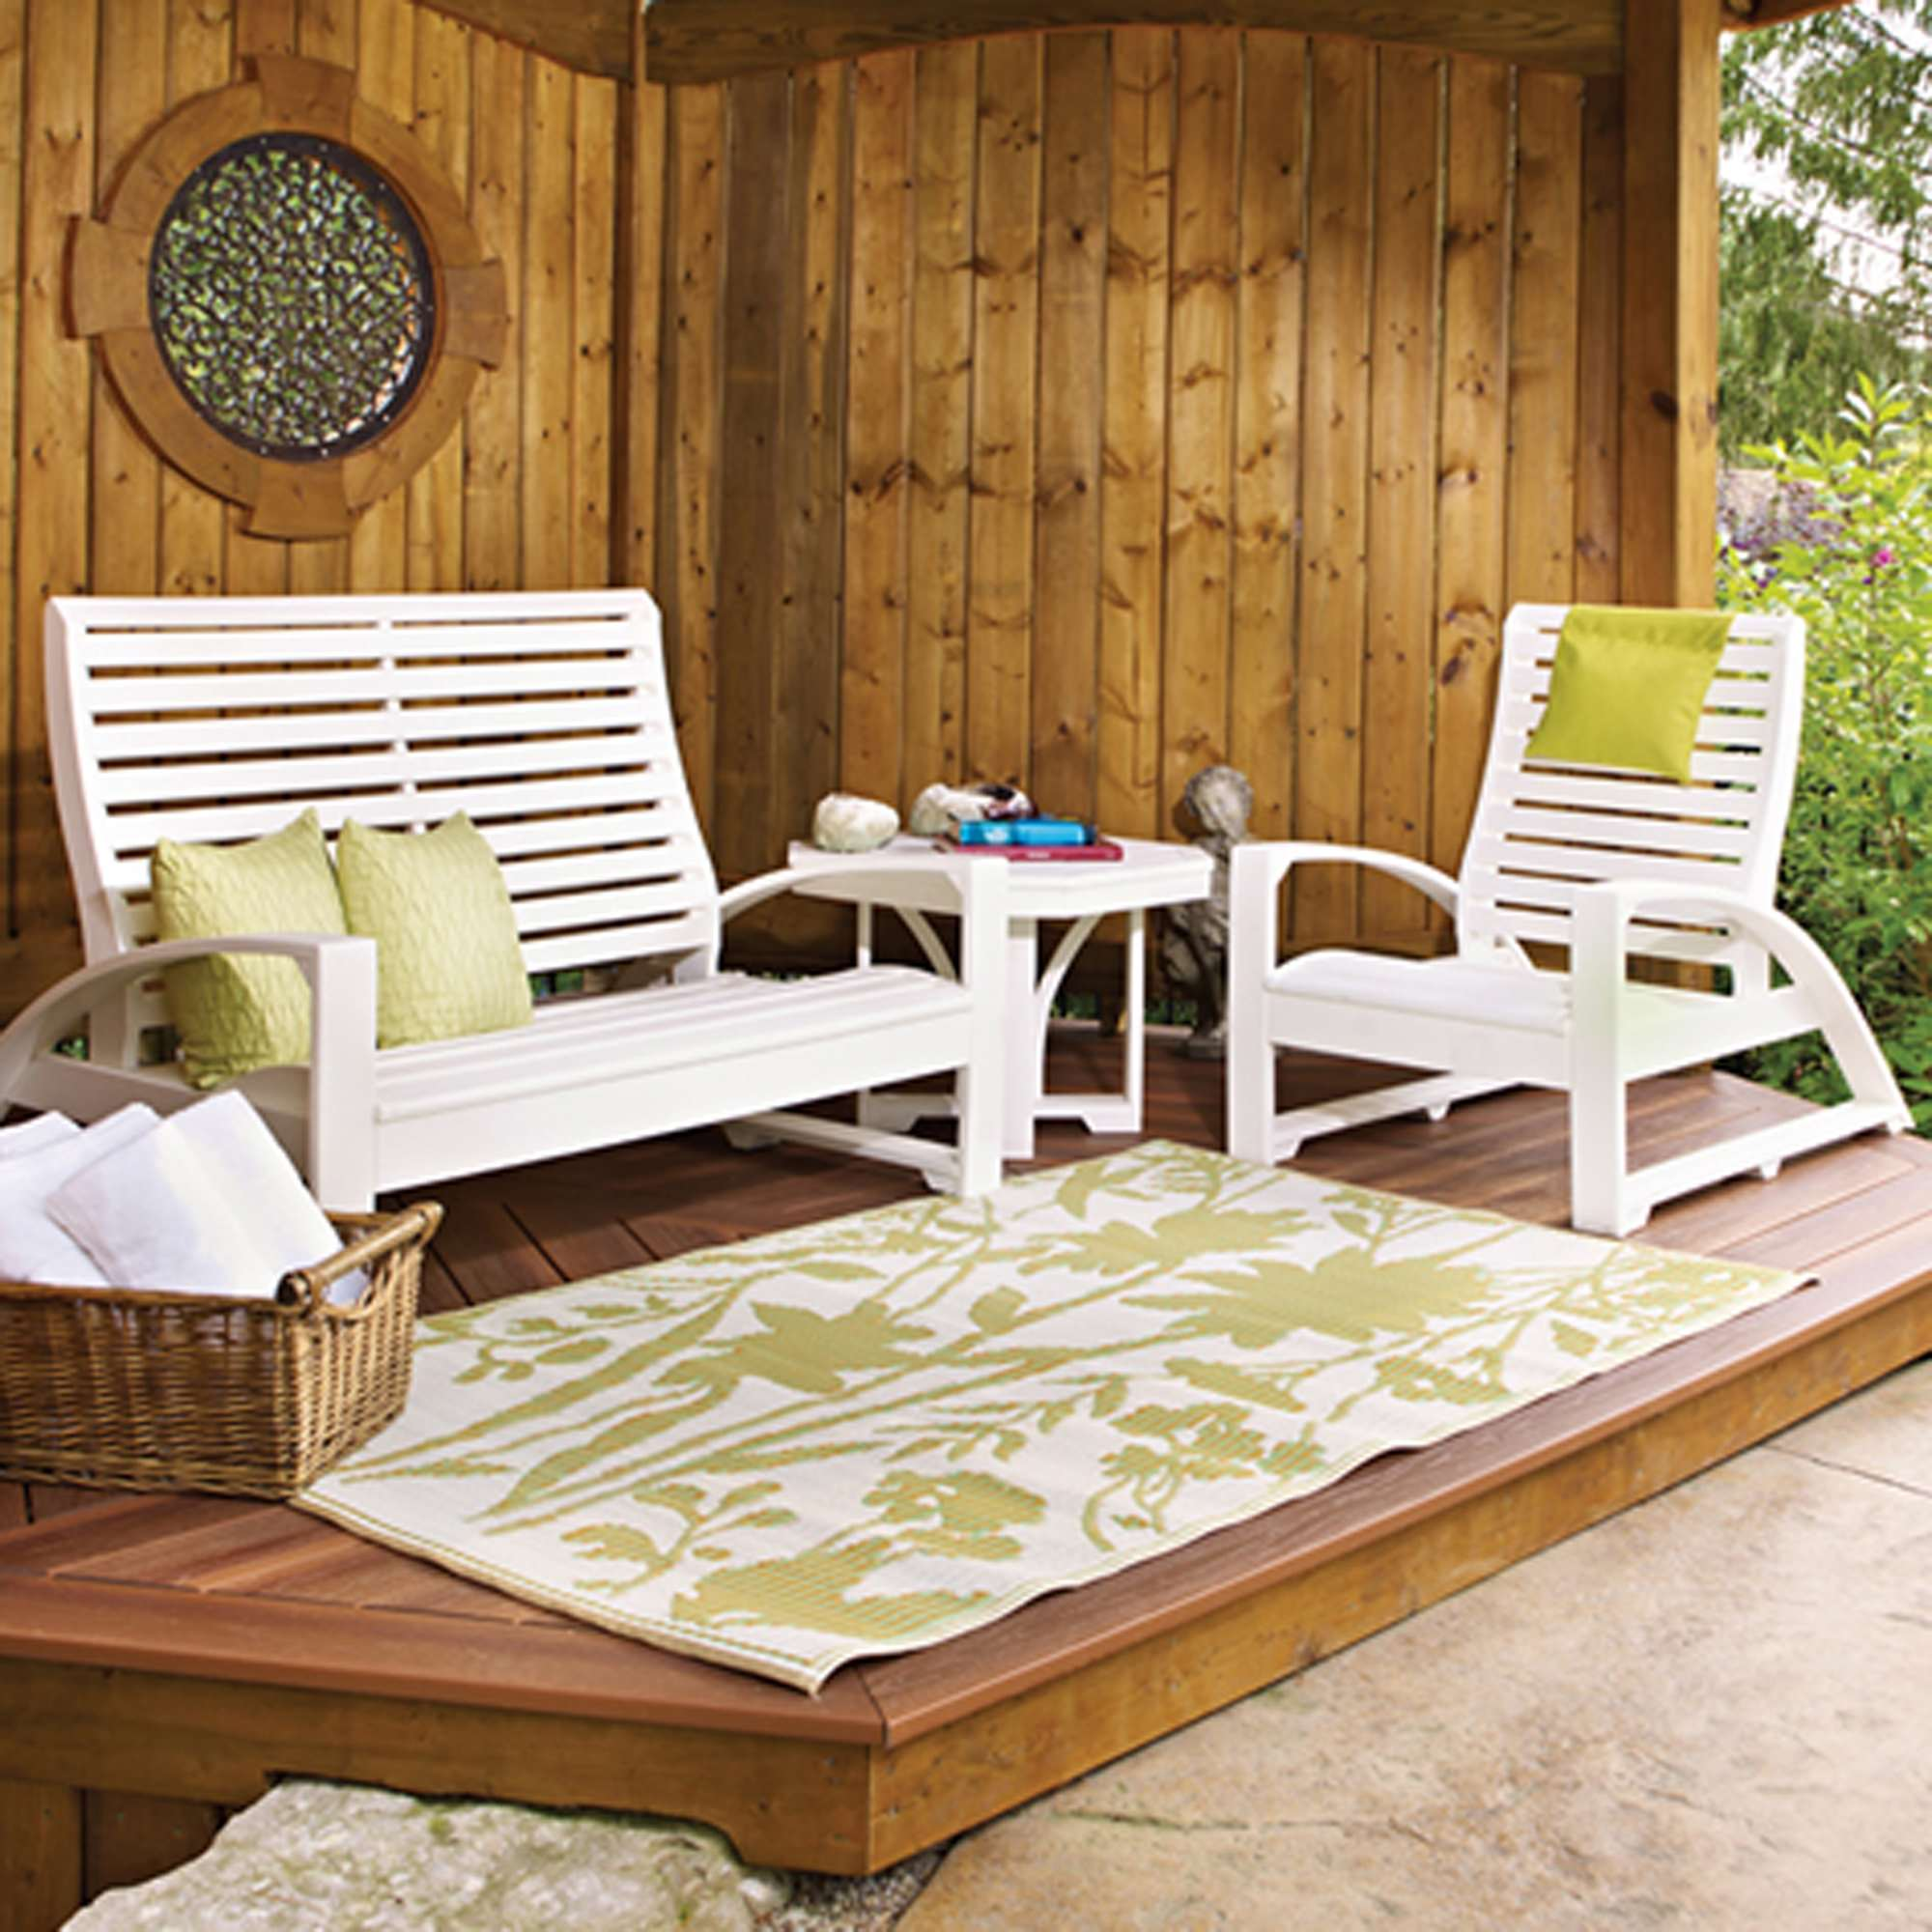 100 Outdoor Patio Rugs Ikea Outdoor Rugs Ikea Patio Beach S Archaicfair Sears Outdoor Patio